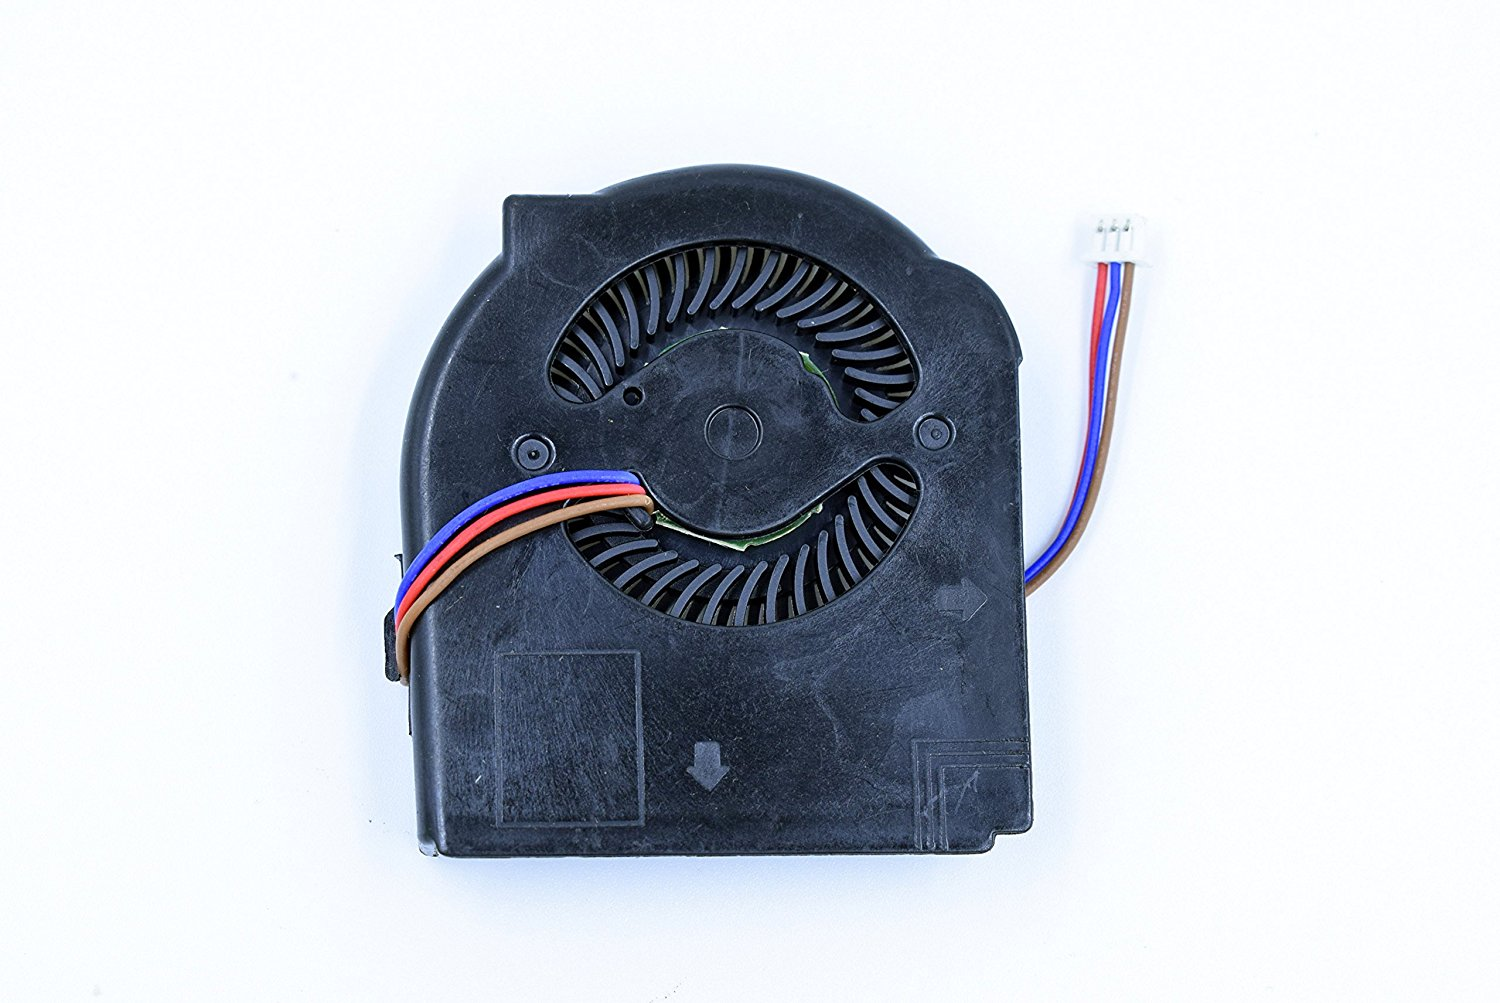 YDLan Replacement CPU Cooling Fan For Lenovo IBM ThinkPad T410 T410I Series Laptop